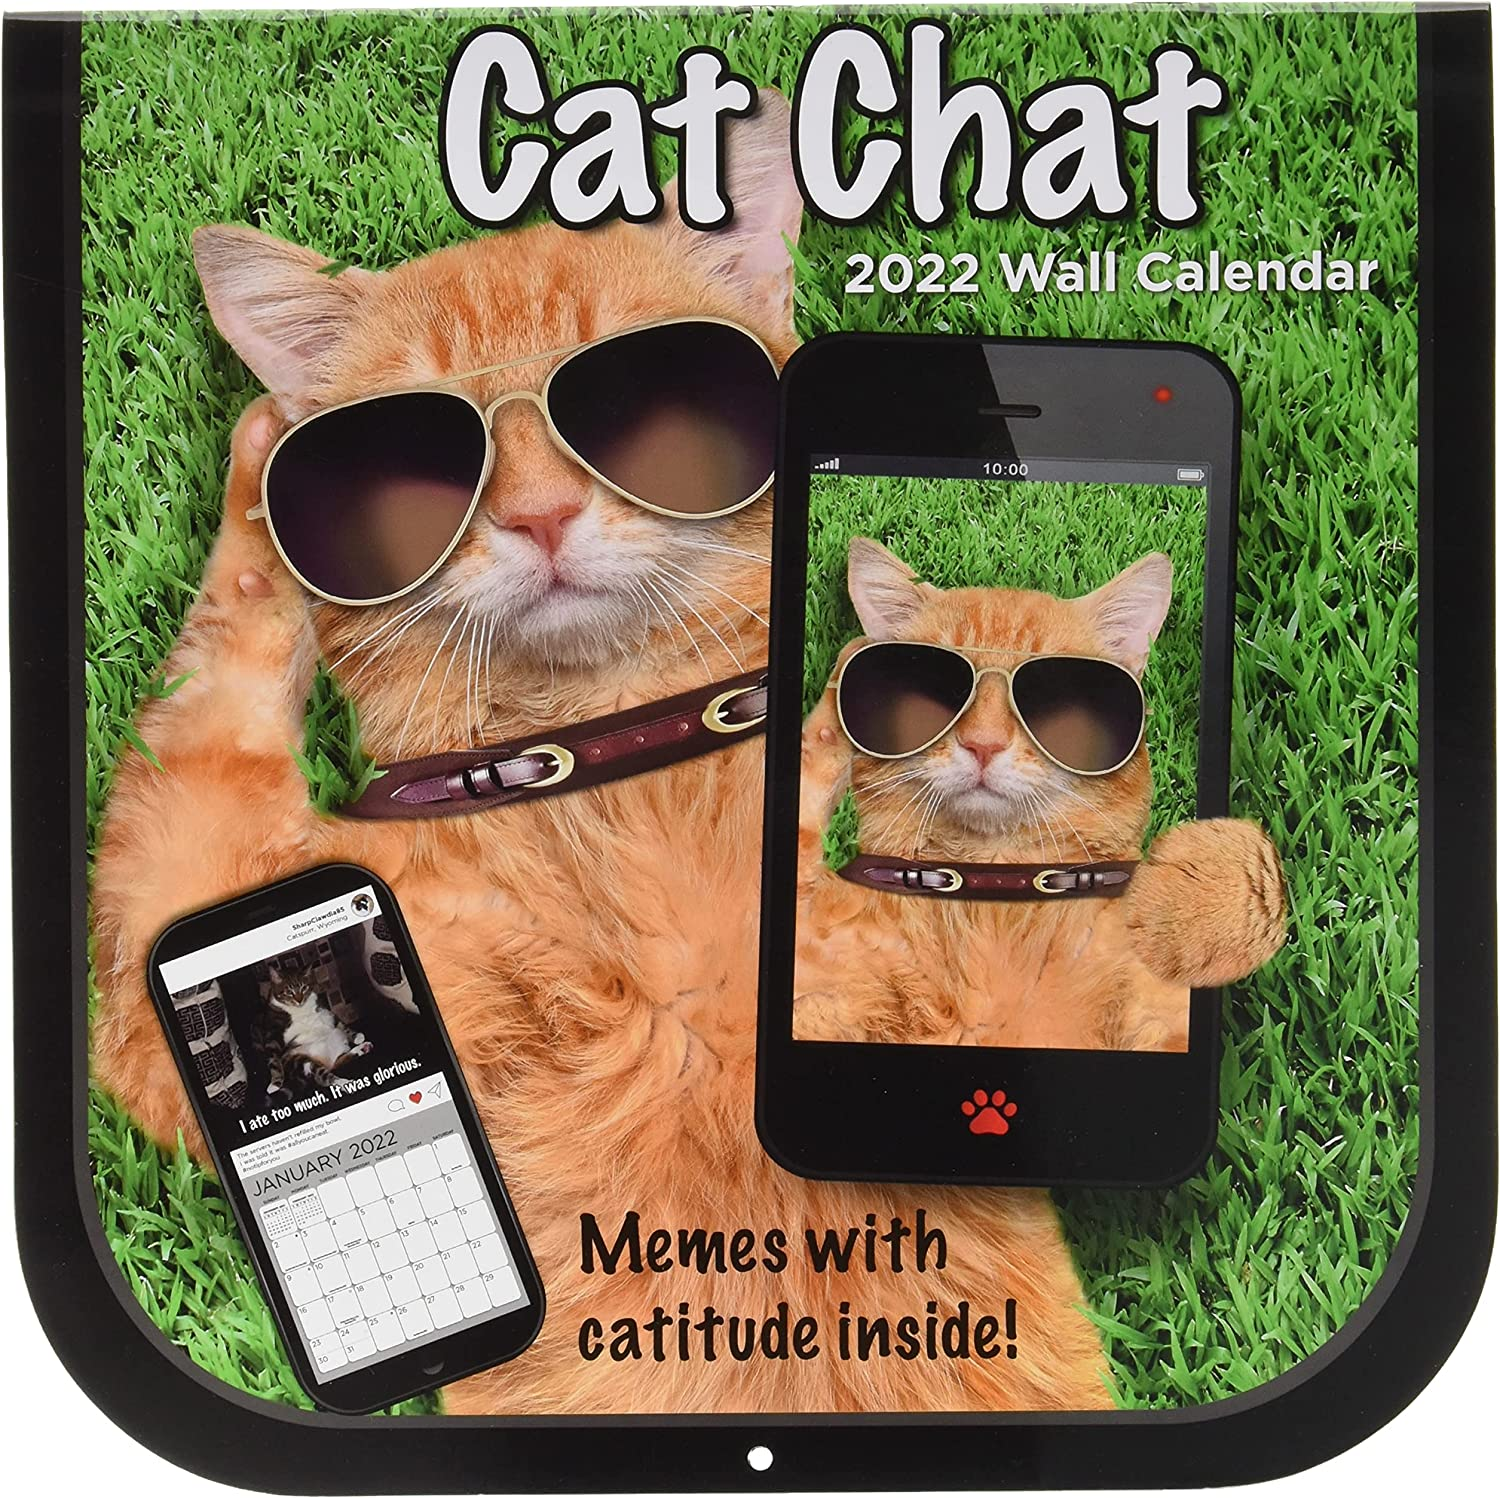 TURNER Photographic Super popular specialty store CAT Chat Wall Calendar Diecut 22998940092 Max 48% OFF